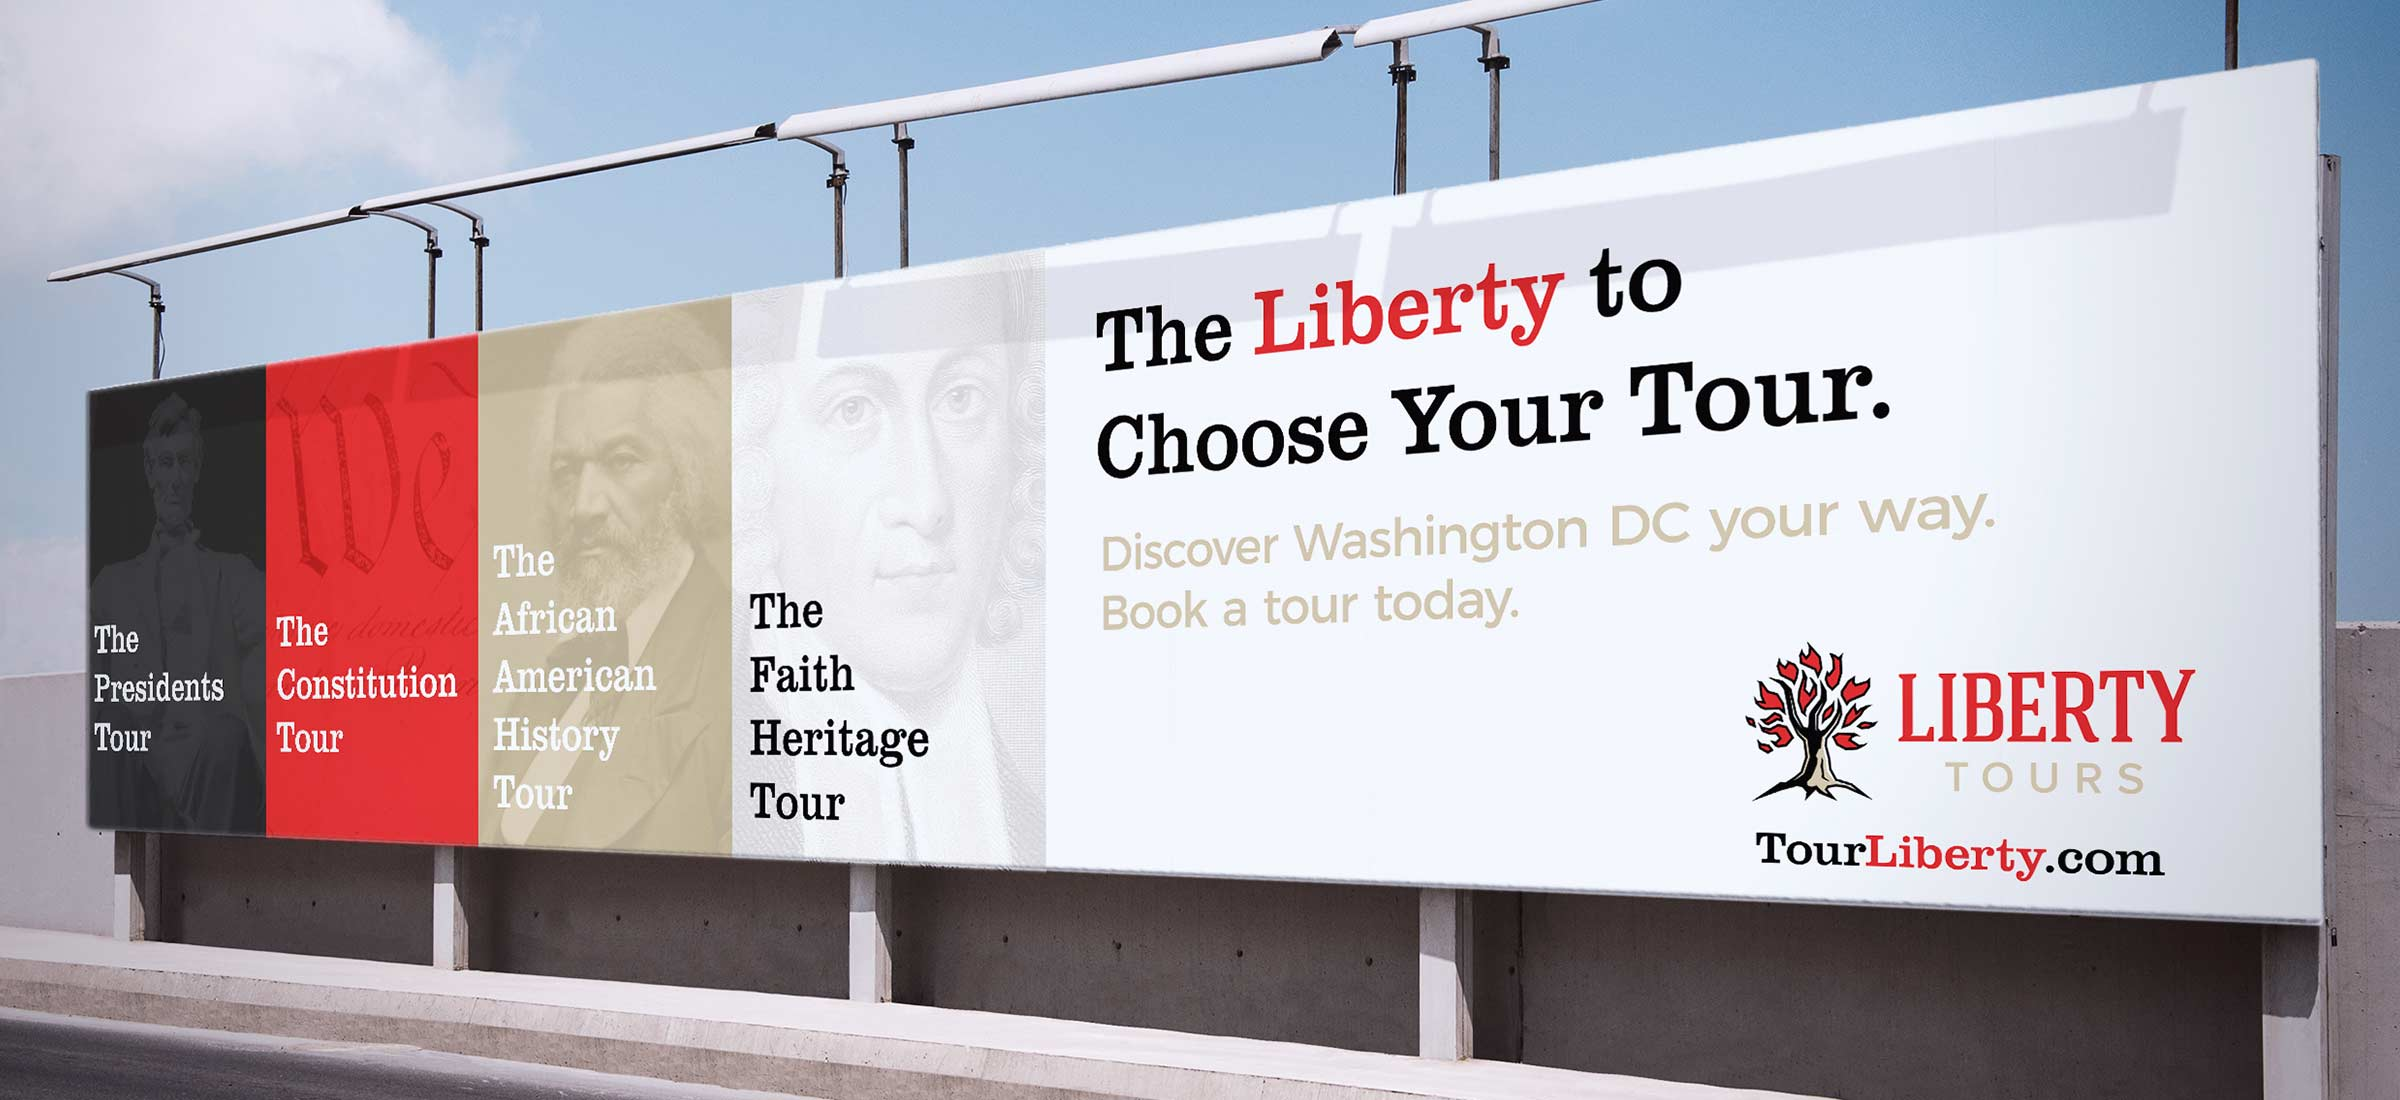 Liberty-Tours-Identity-Presentation-6-billboard-advertising